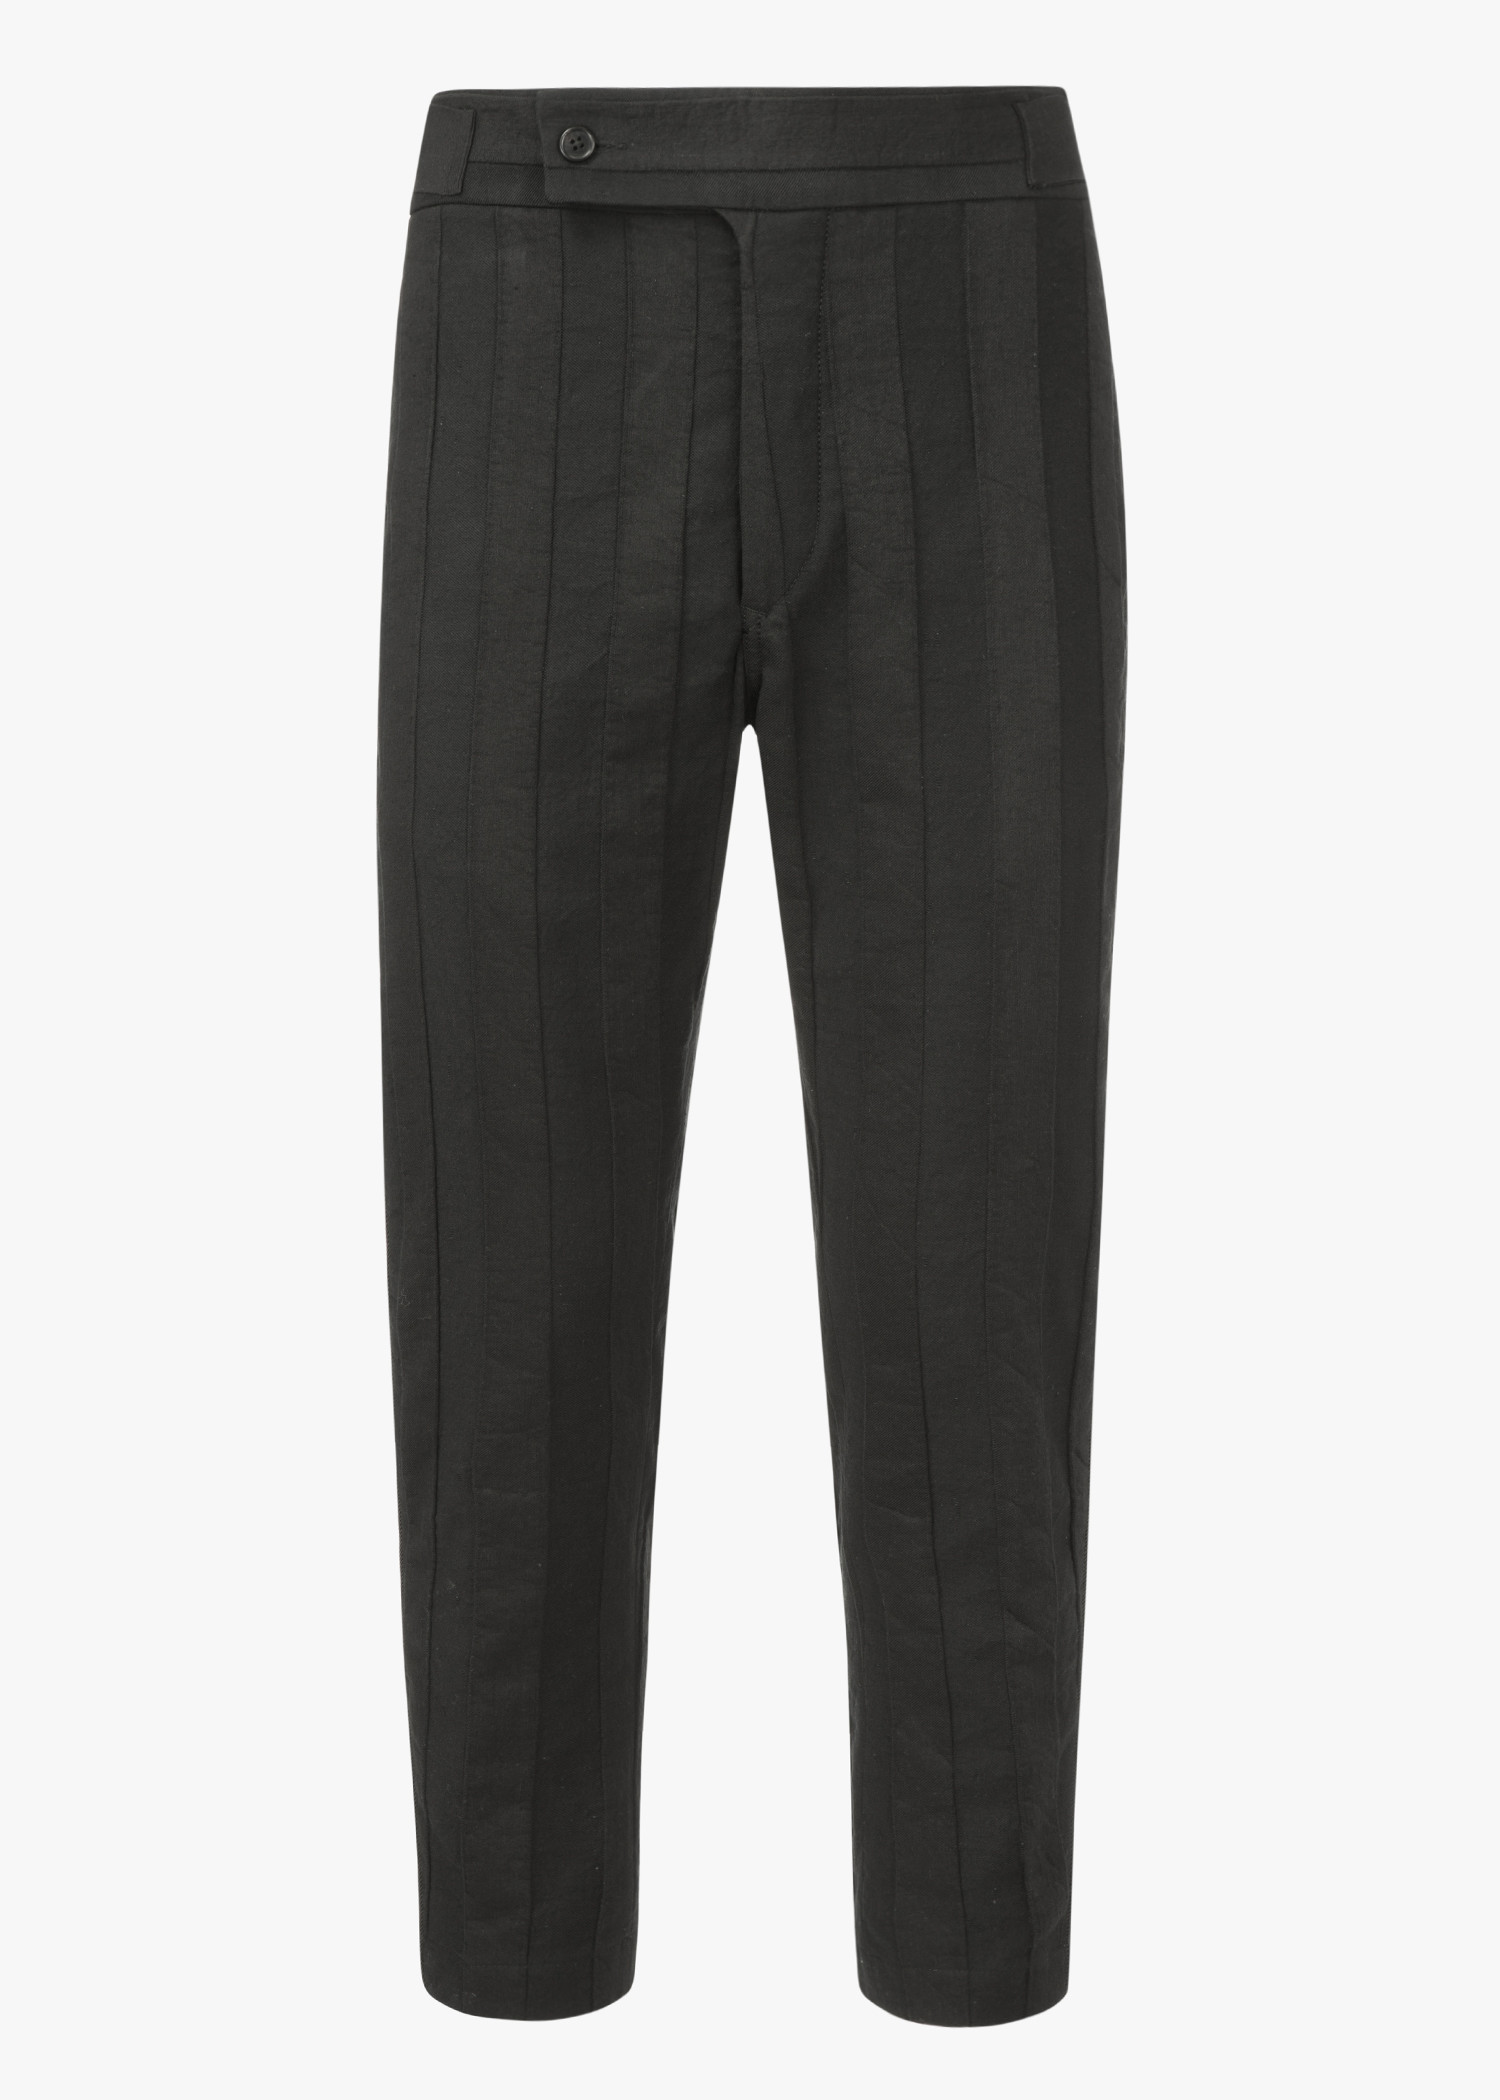 Ann Demeulemeester Side Cinched Trousers In Black